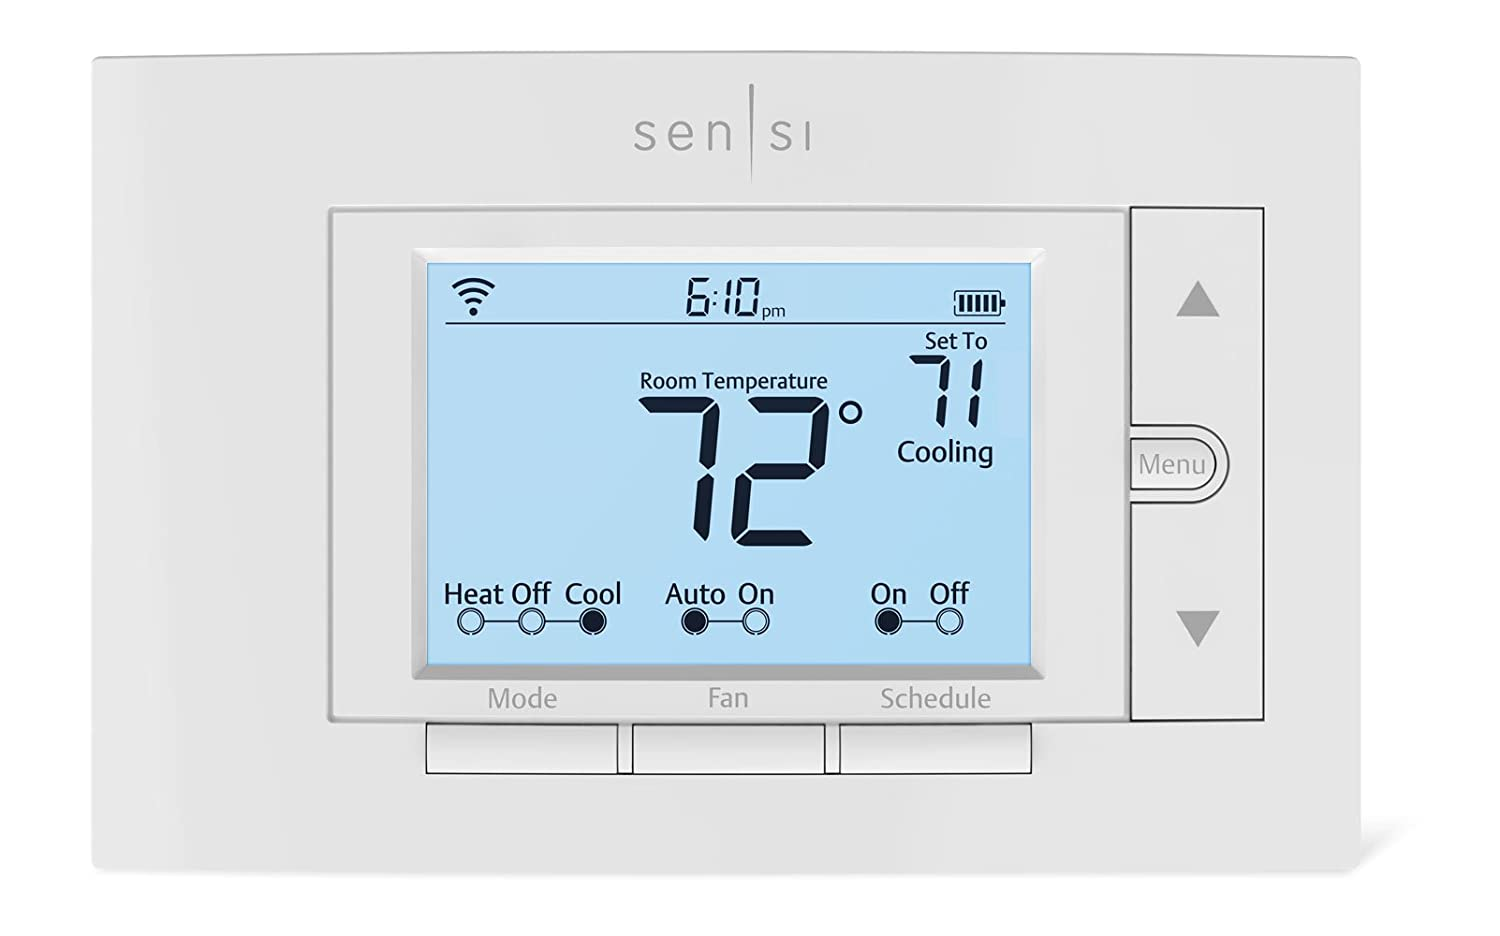 Programmable Thermostat Wiring Diagram Sensi Schematic Diagrams Emerson Digital Wi Fi Manual Data U2022